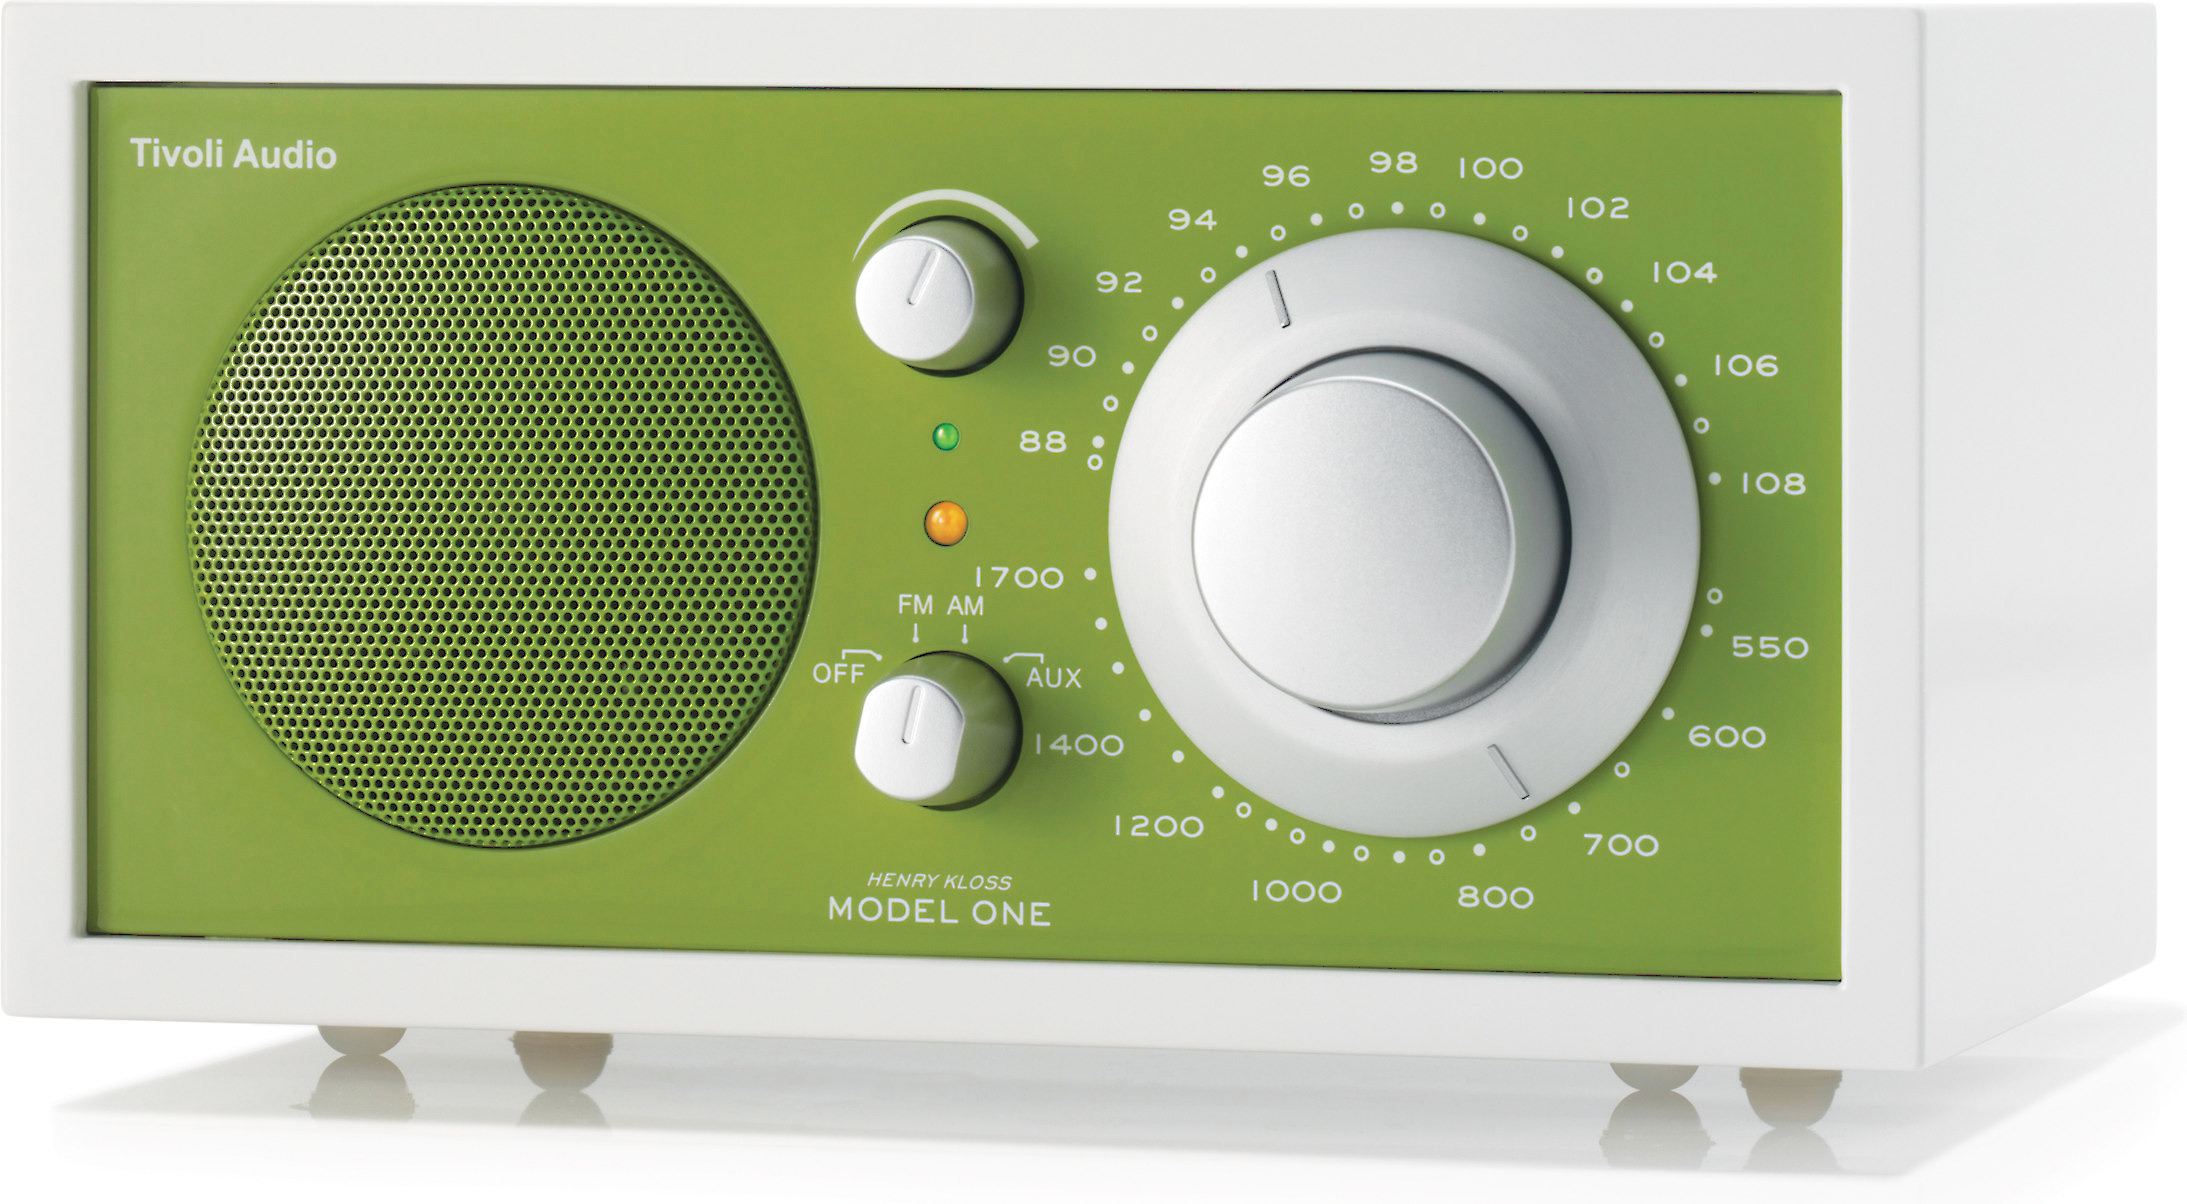 Tivoli Audio Model One Alternative Tivoli Audio Frost White Model One Frost White And Green